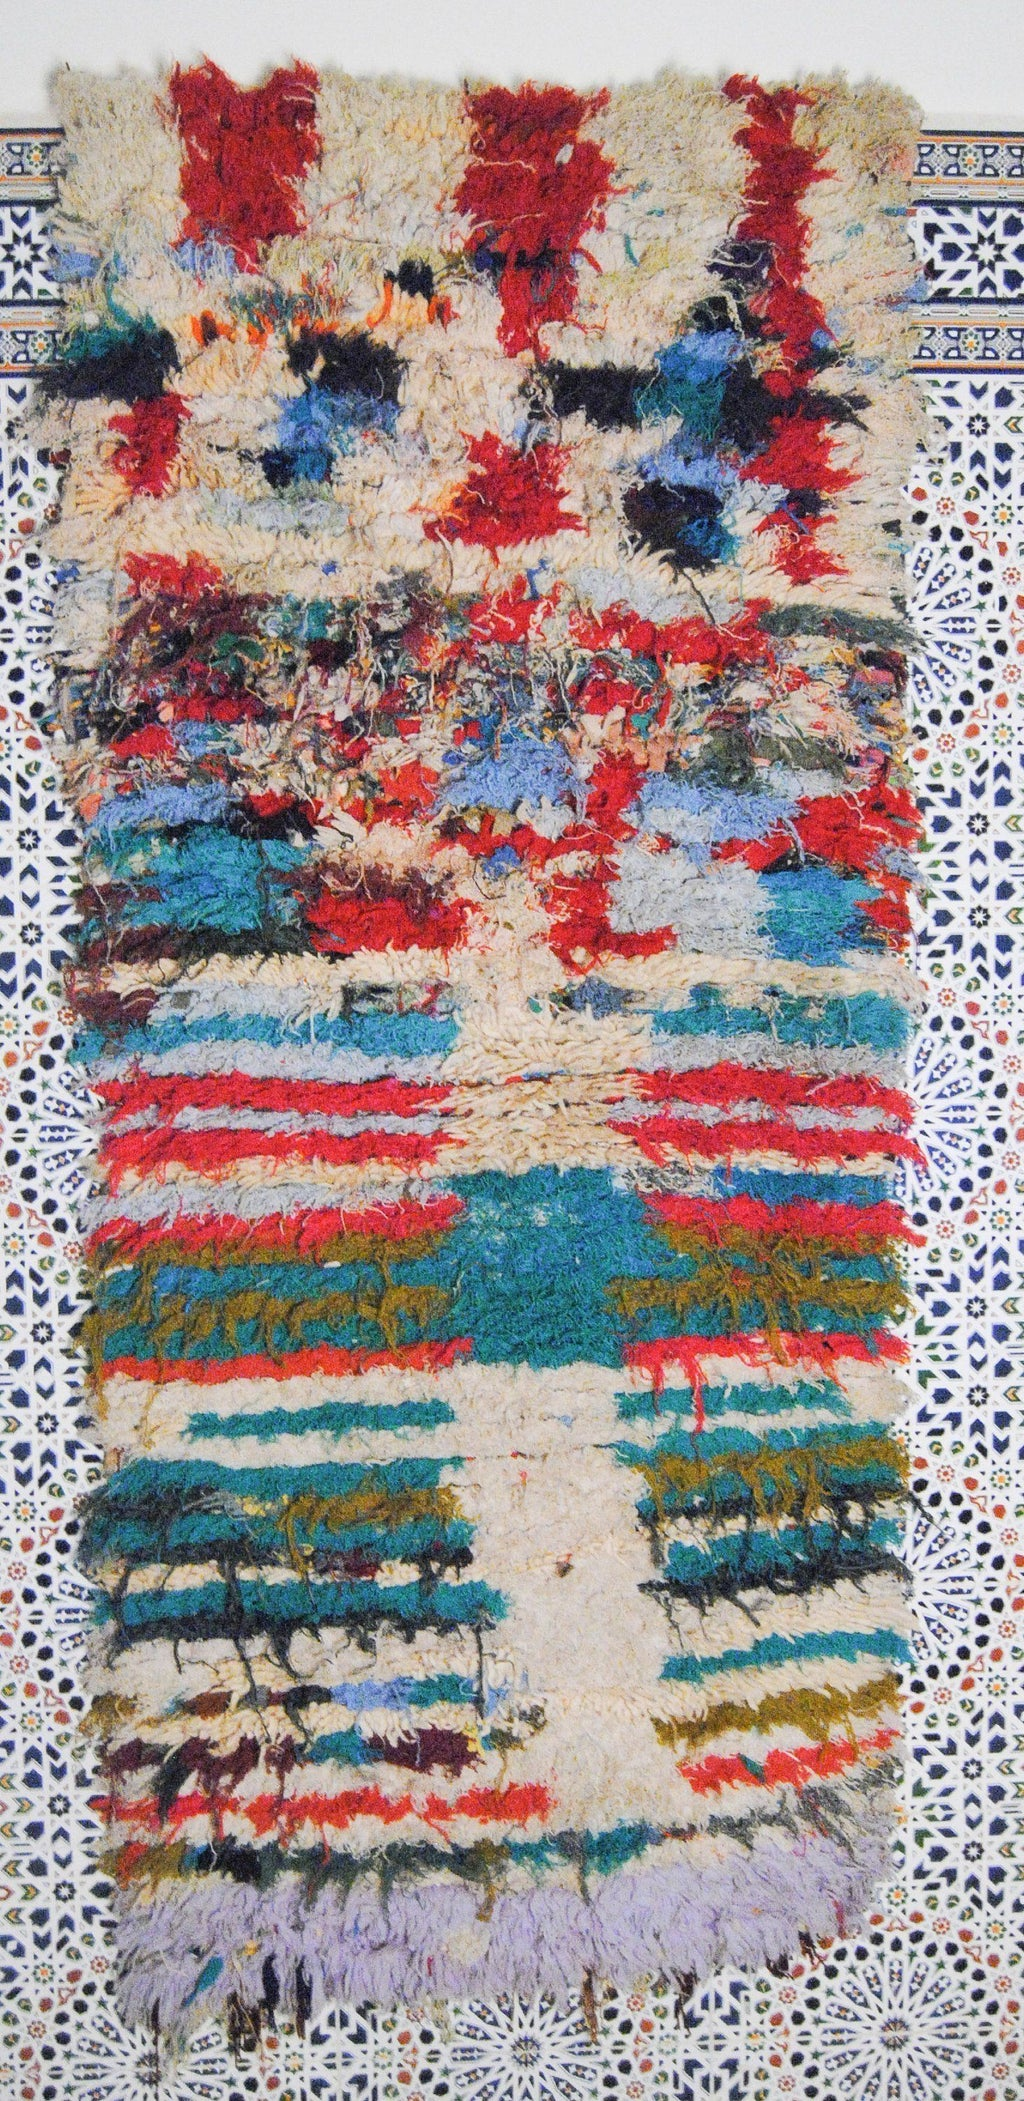 Amanar  boucherouite rug tapis berbere psychedelic tapestry moroccan rugs - HammoudRugs